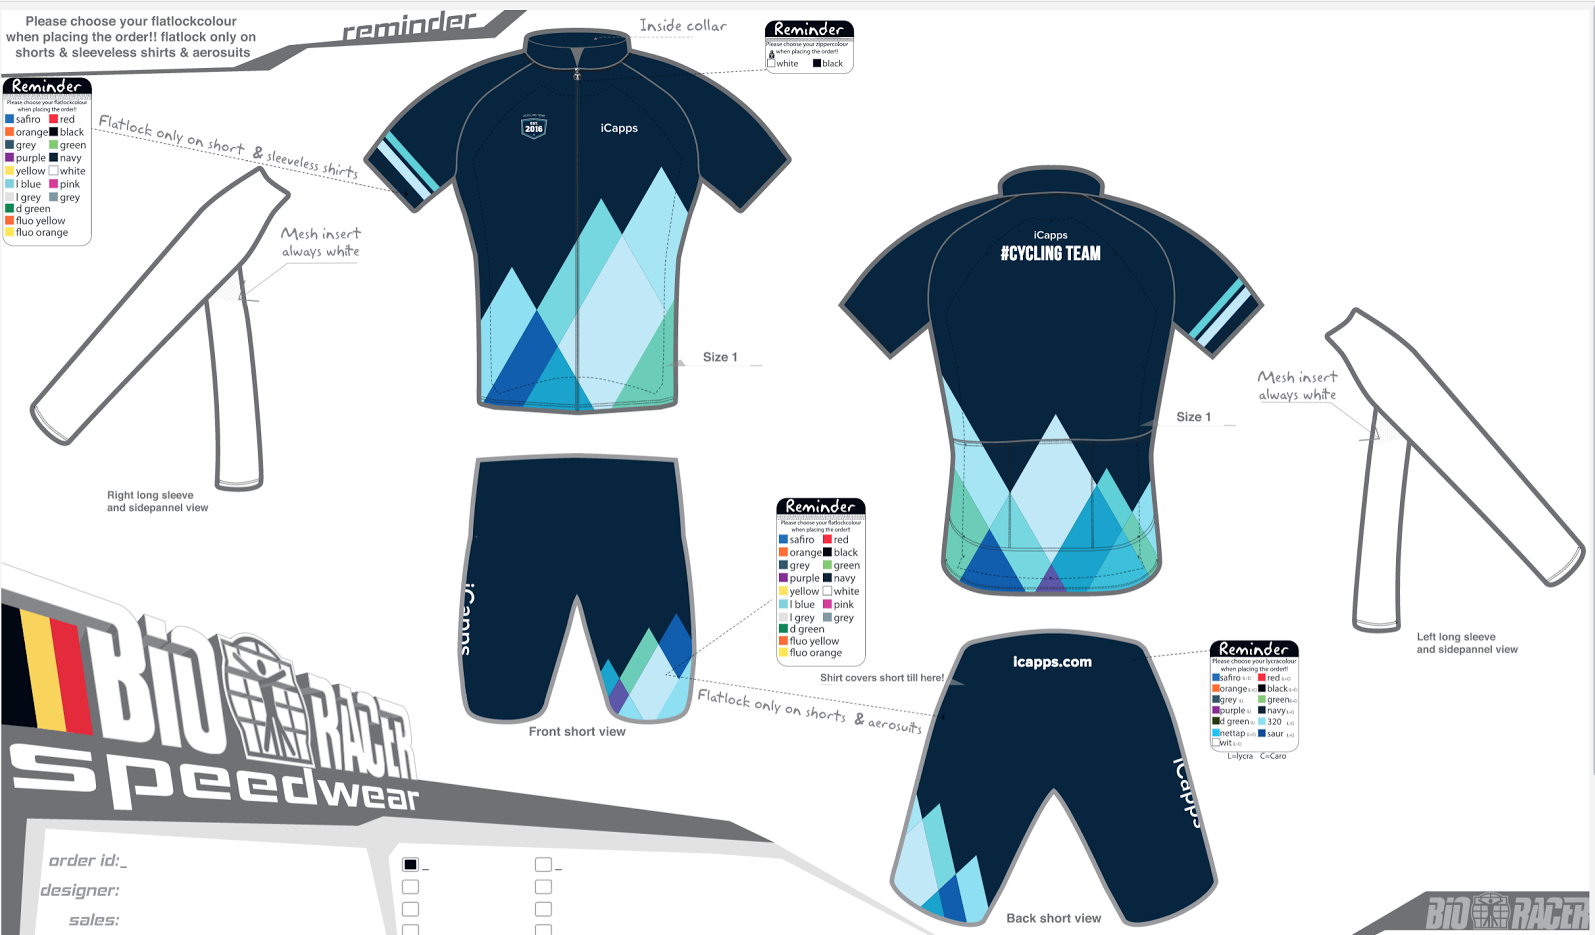 bioracer icapps outfit